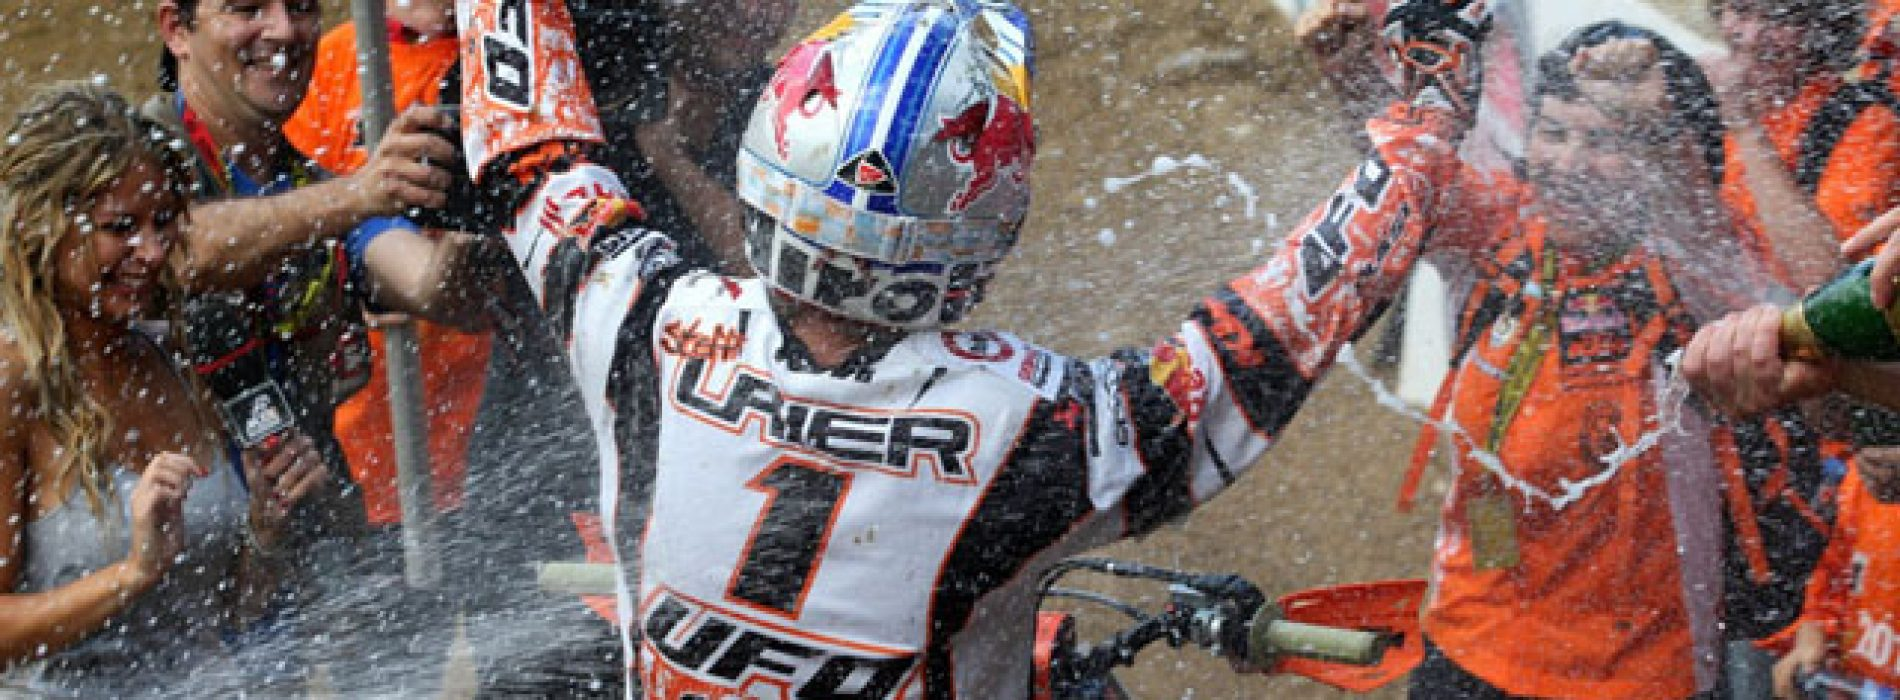 Steffi Laier 4x WMX Champion speaks on career-racing 15 years at the top in Europe and USA